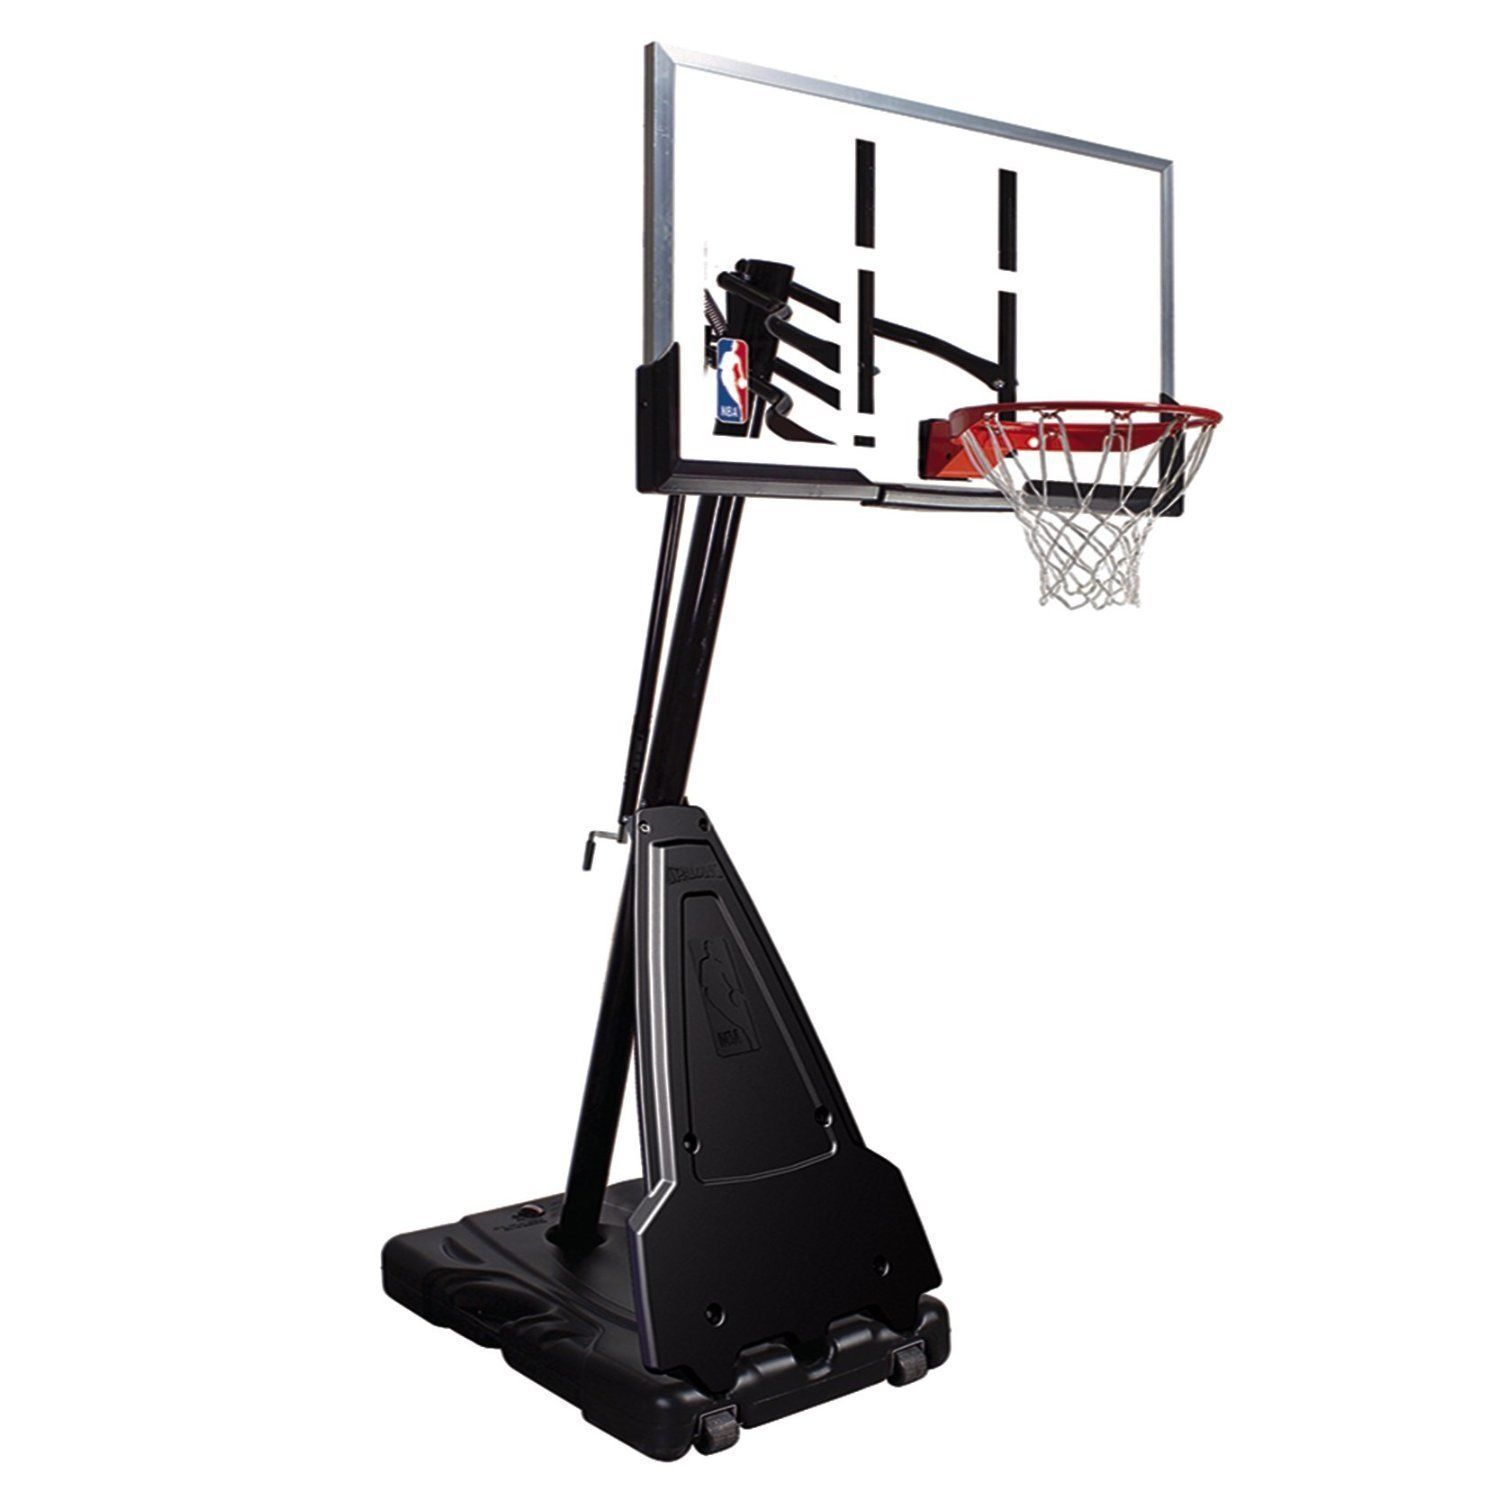 backboard systems 21196 spalding 68564 portable basketball system